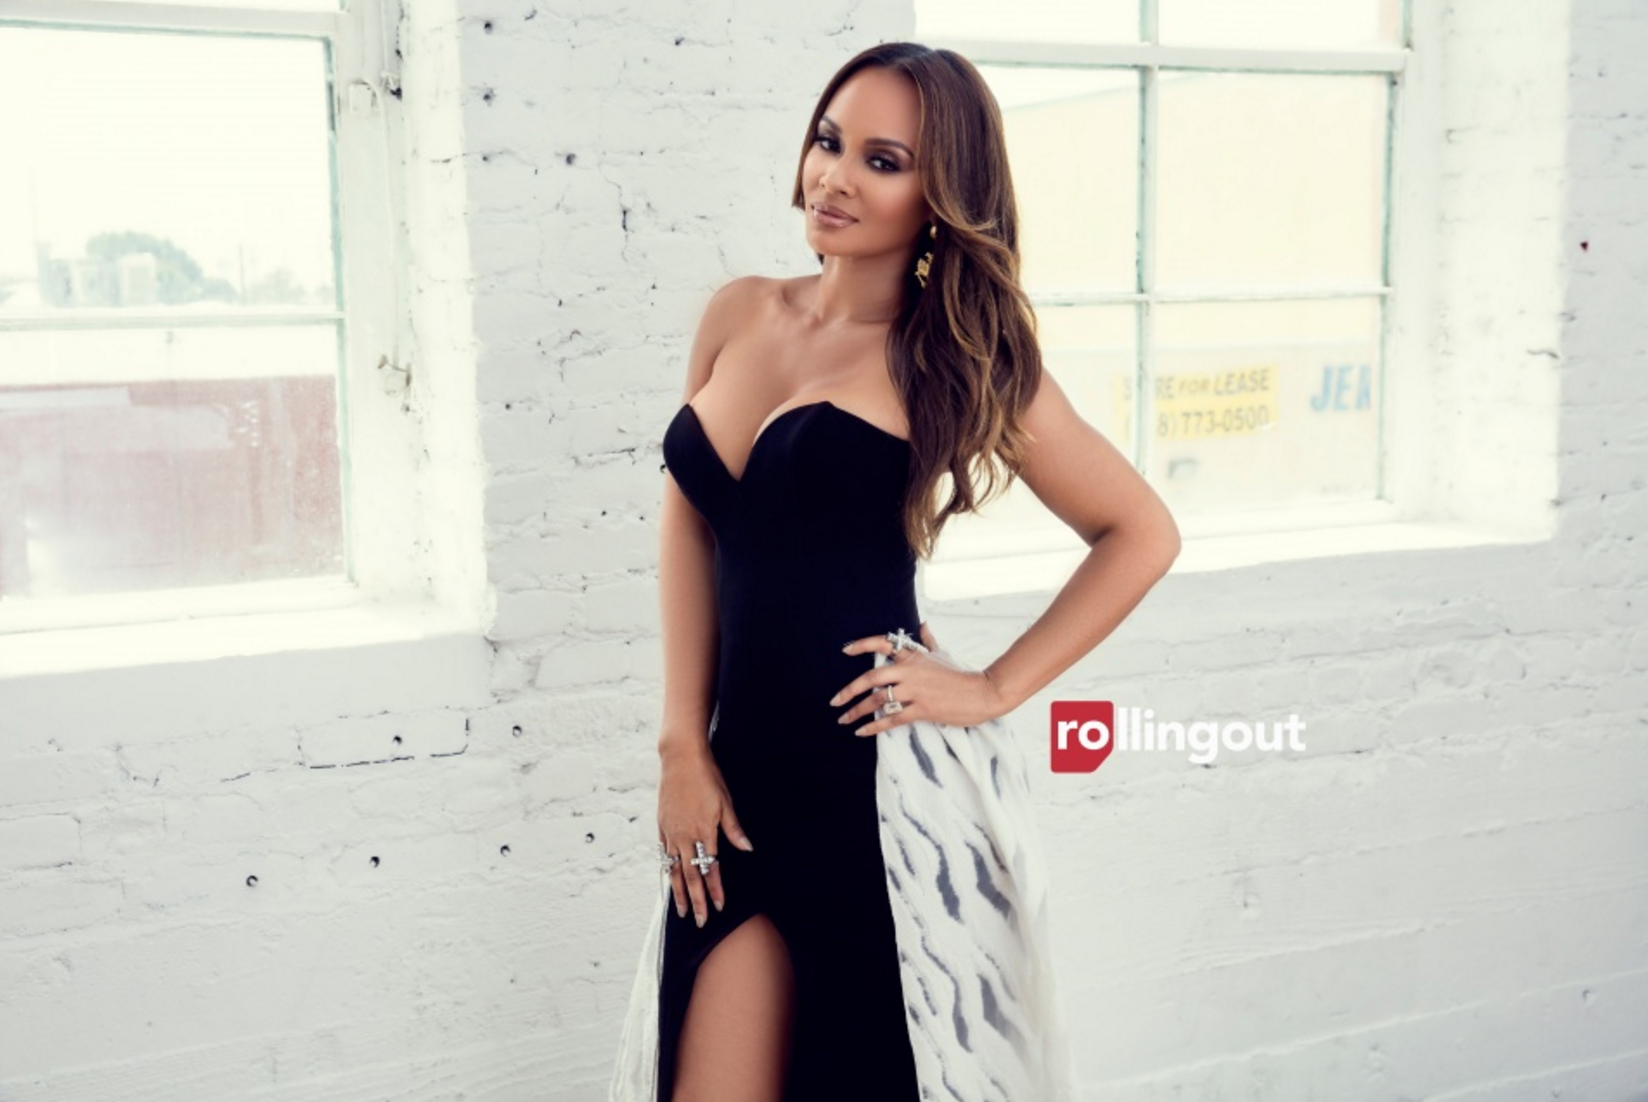 Evelyn-Lozada-Rolling-Out-Magazine-Interview-1